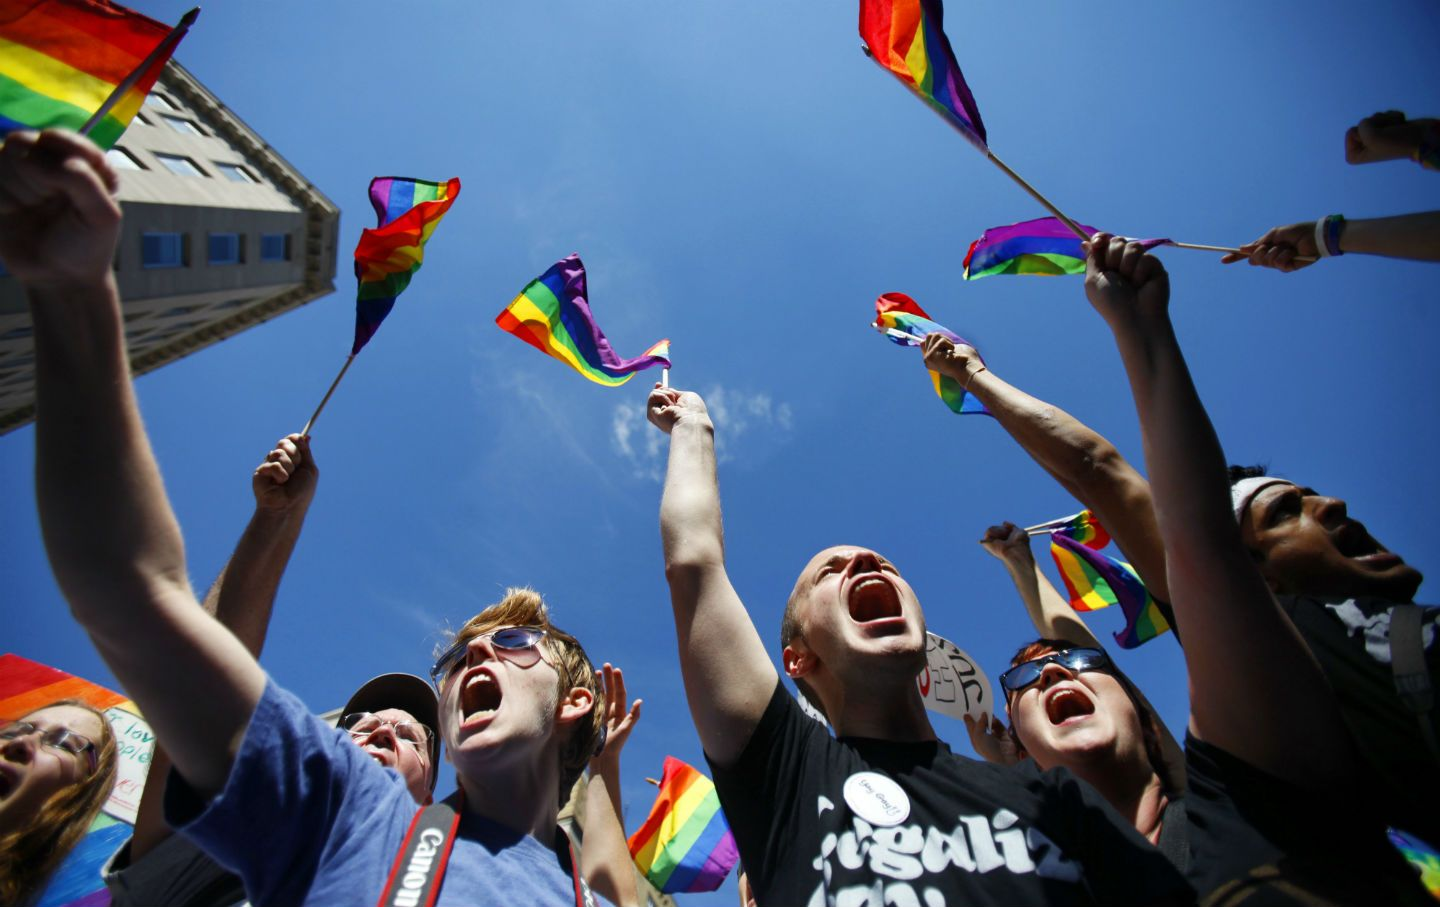 SCOTUS Will Likely Legalize Same-Sex Marriage—but the Fight Over Marriage Is Not Done Yet